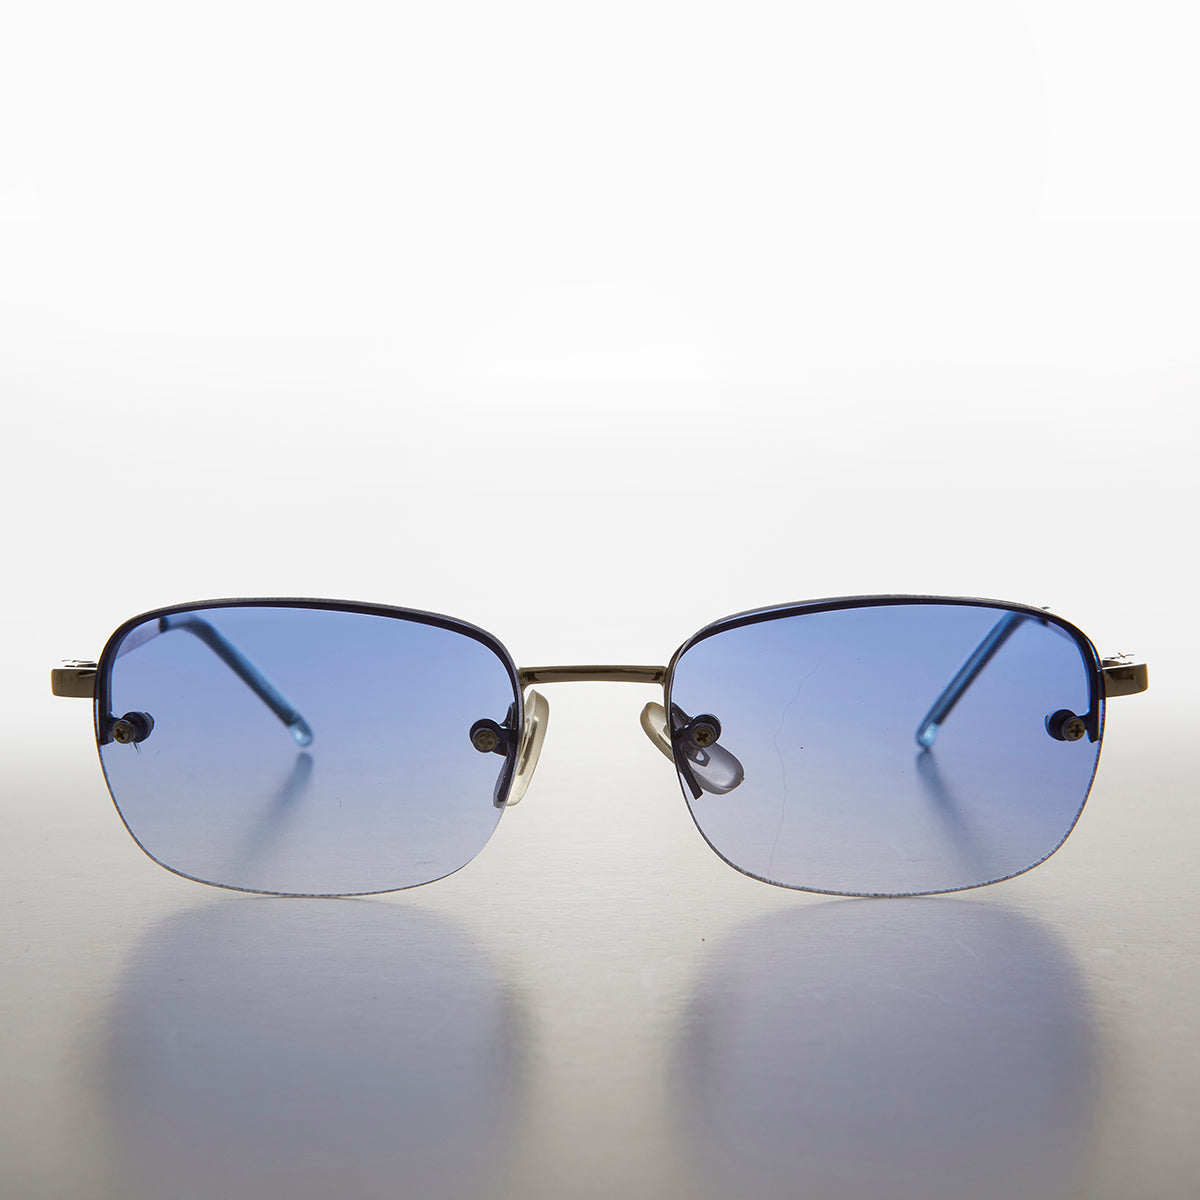 Tinted Lens Rimless Rectangular Vintage Dead Stock Sunglass